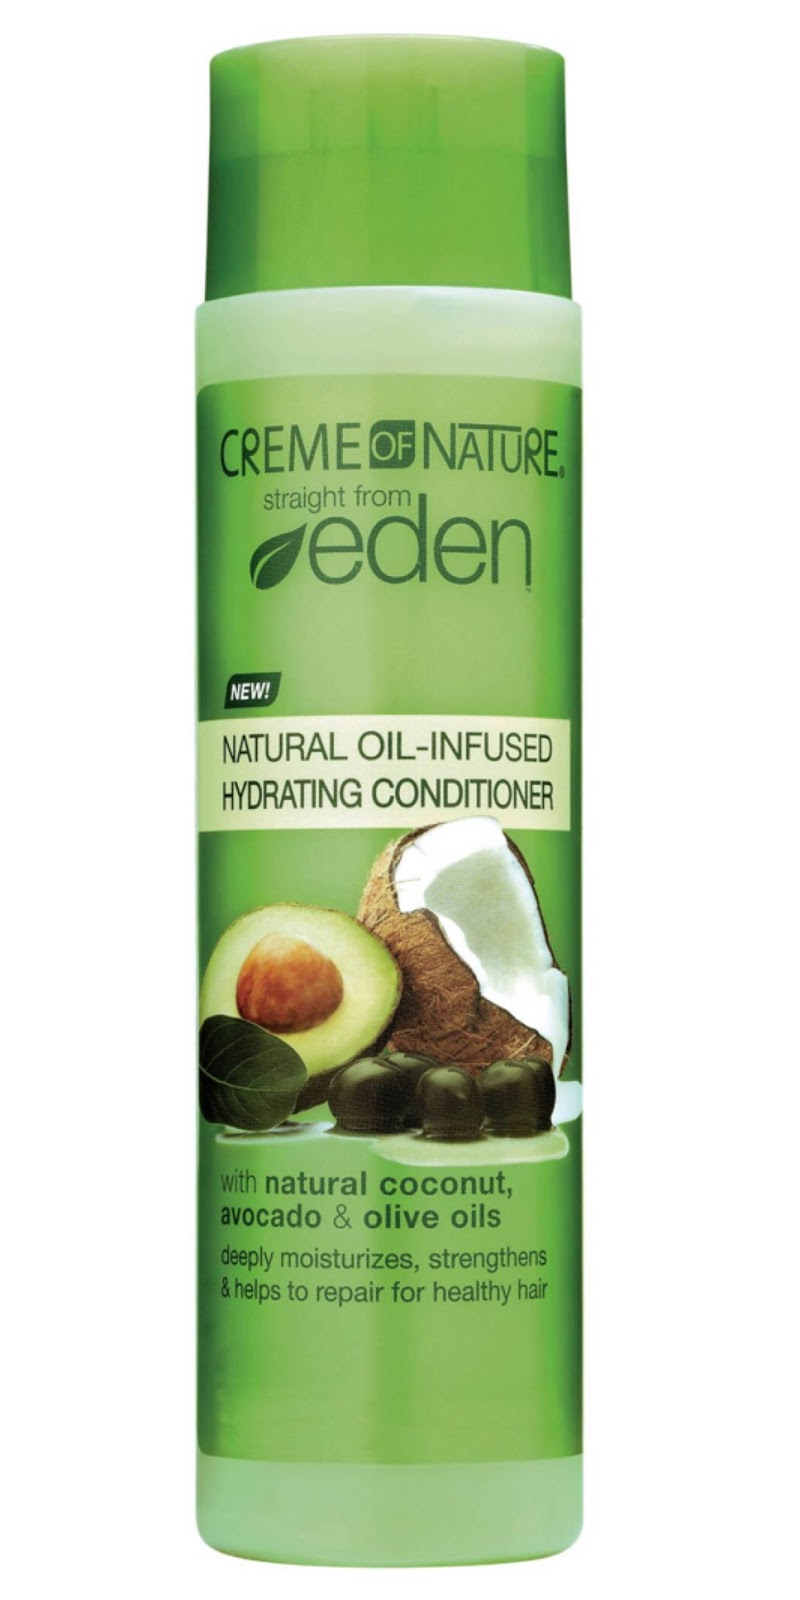 Creme Of Nature Eden Hair Products